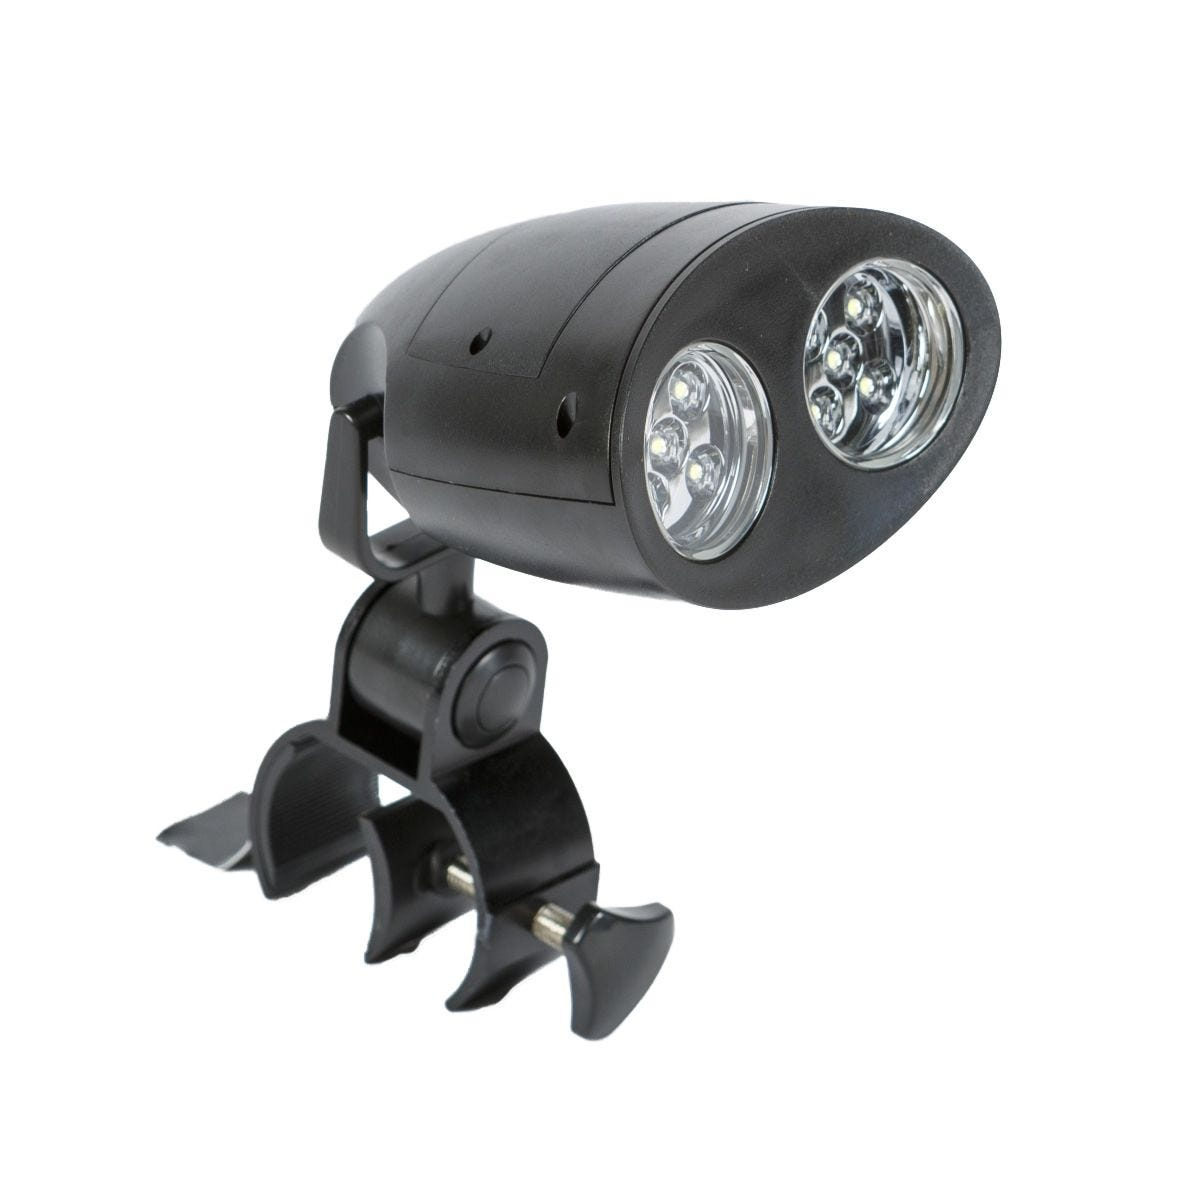 Barbecue Grip Light